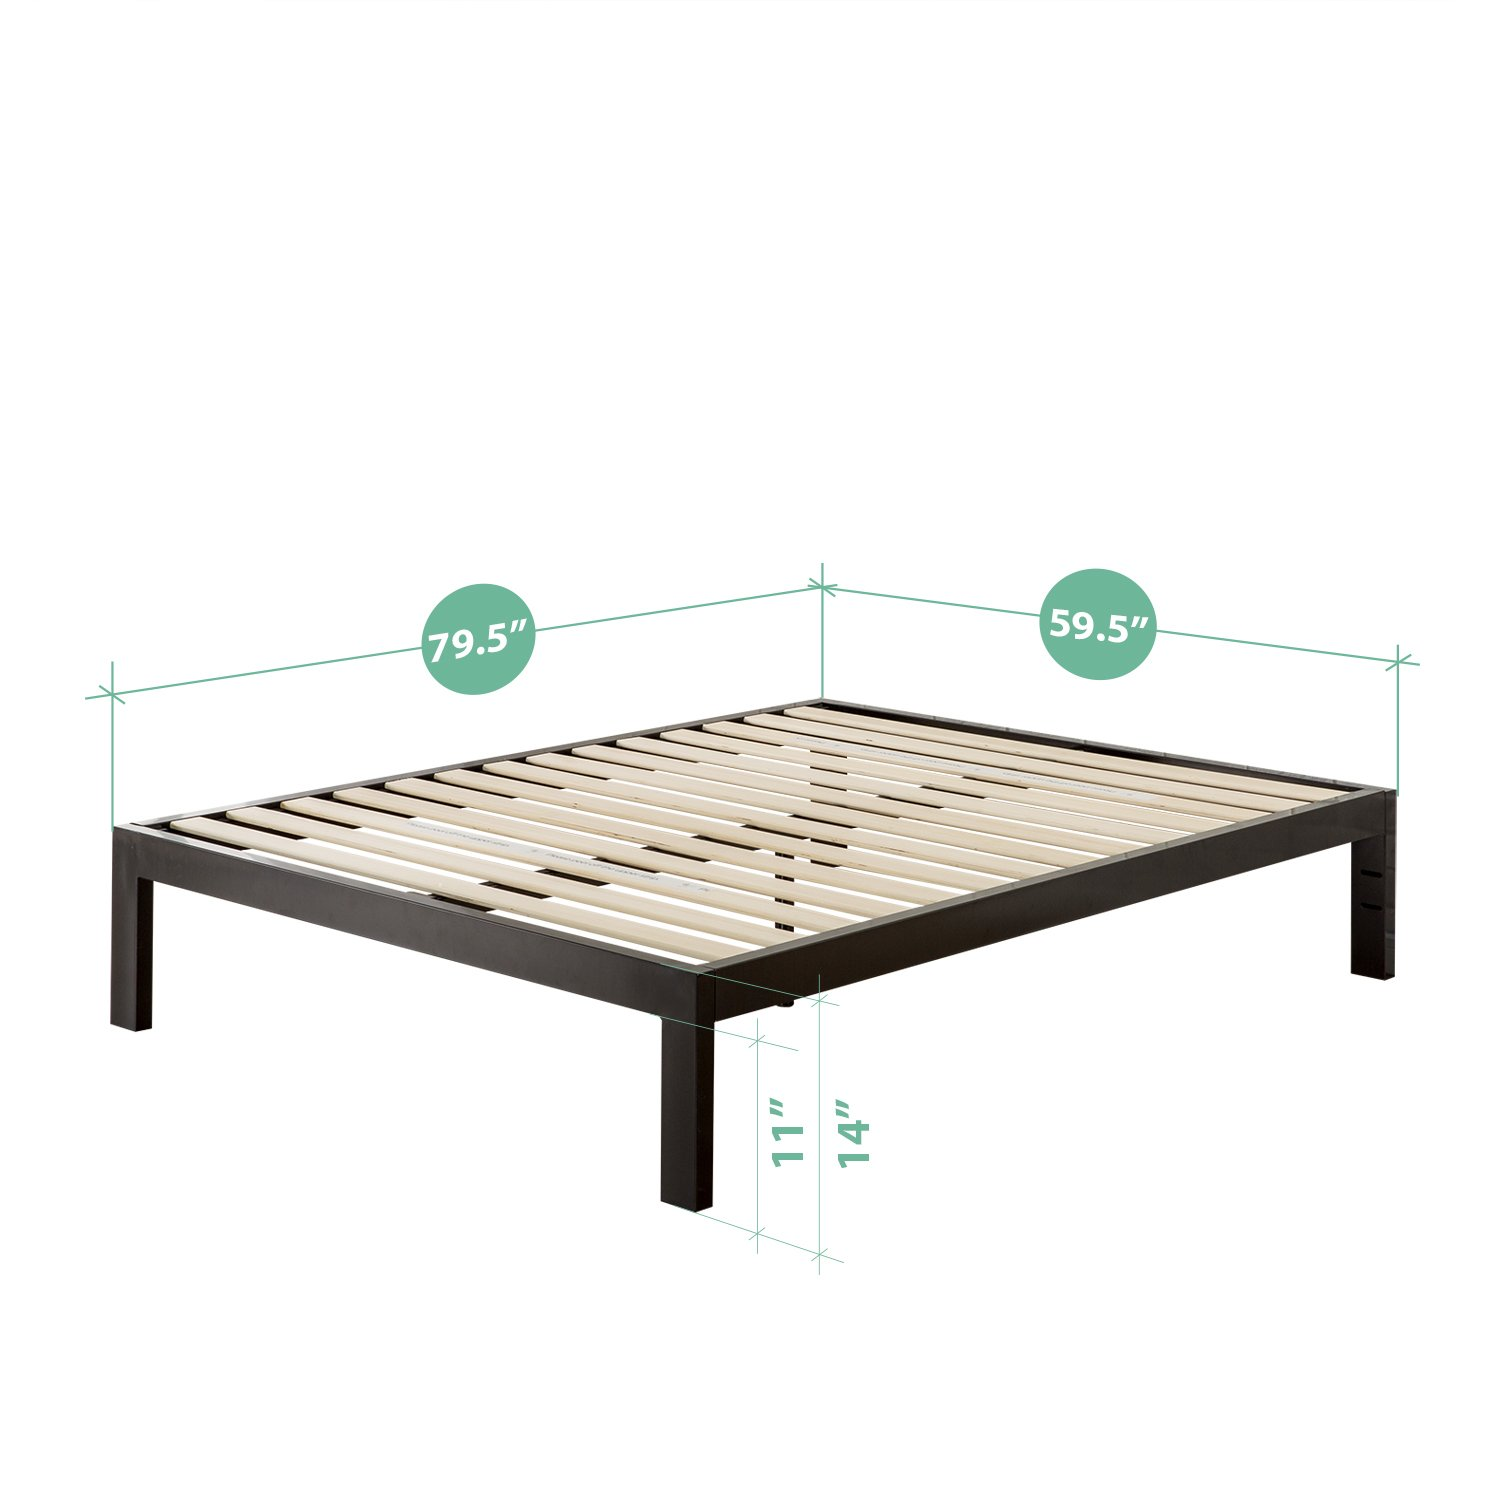 New Amazon Zinus Quick Snap TM Inch Platform Bed Frame Mattress Foundation with Less than Inch Spacing Wooden Slat Support no Bolts or Nuts